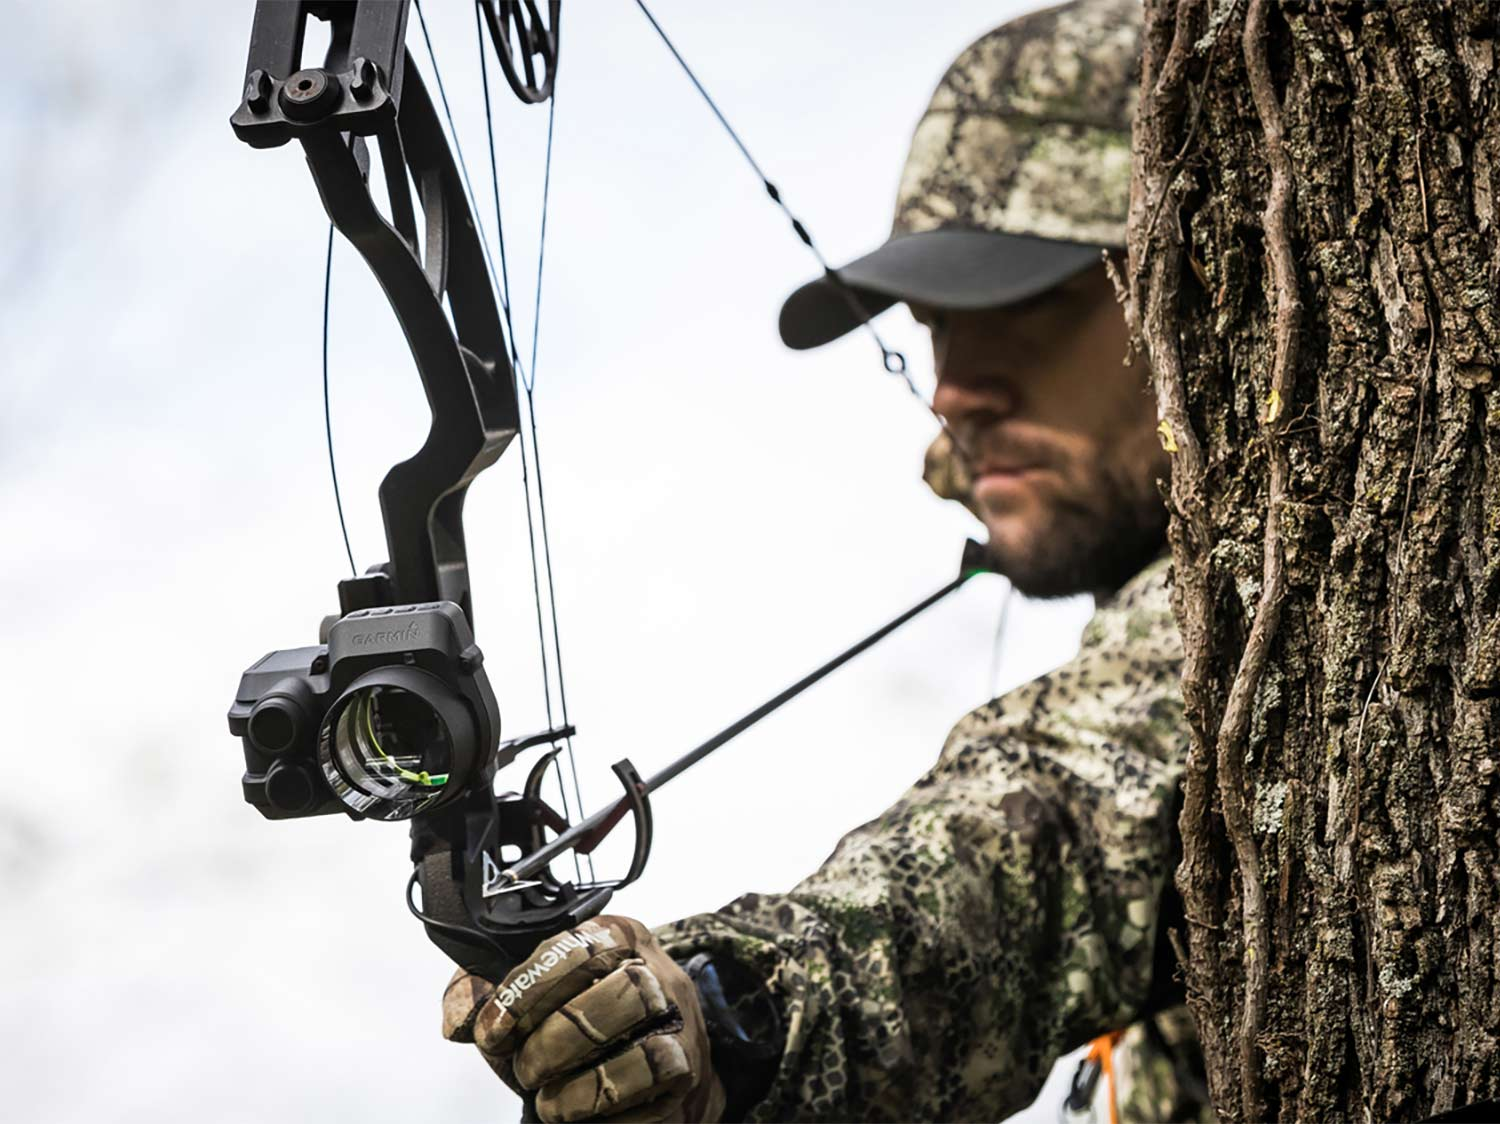 A hunter uses a compound bow fitted with a Garmin bowsight.